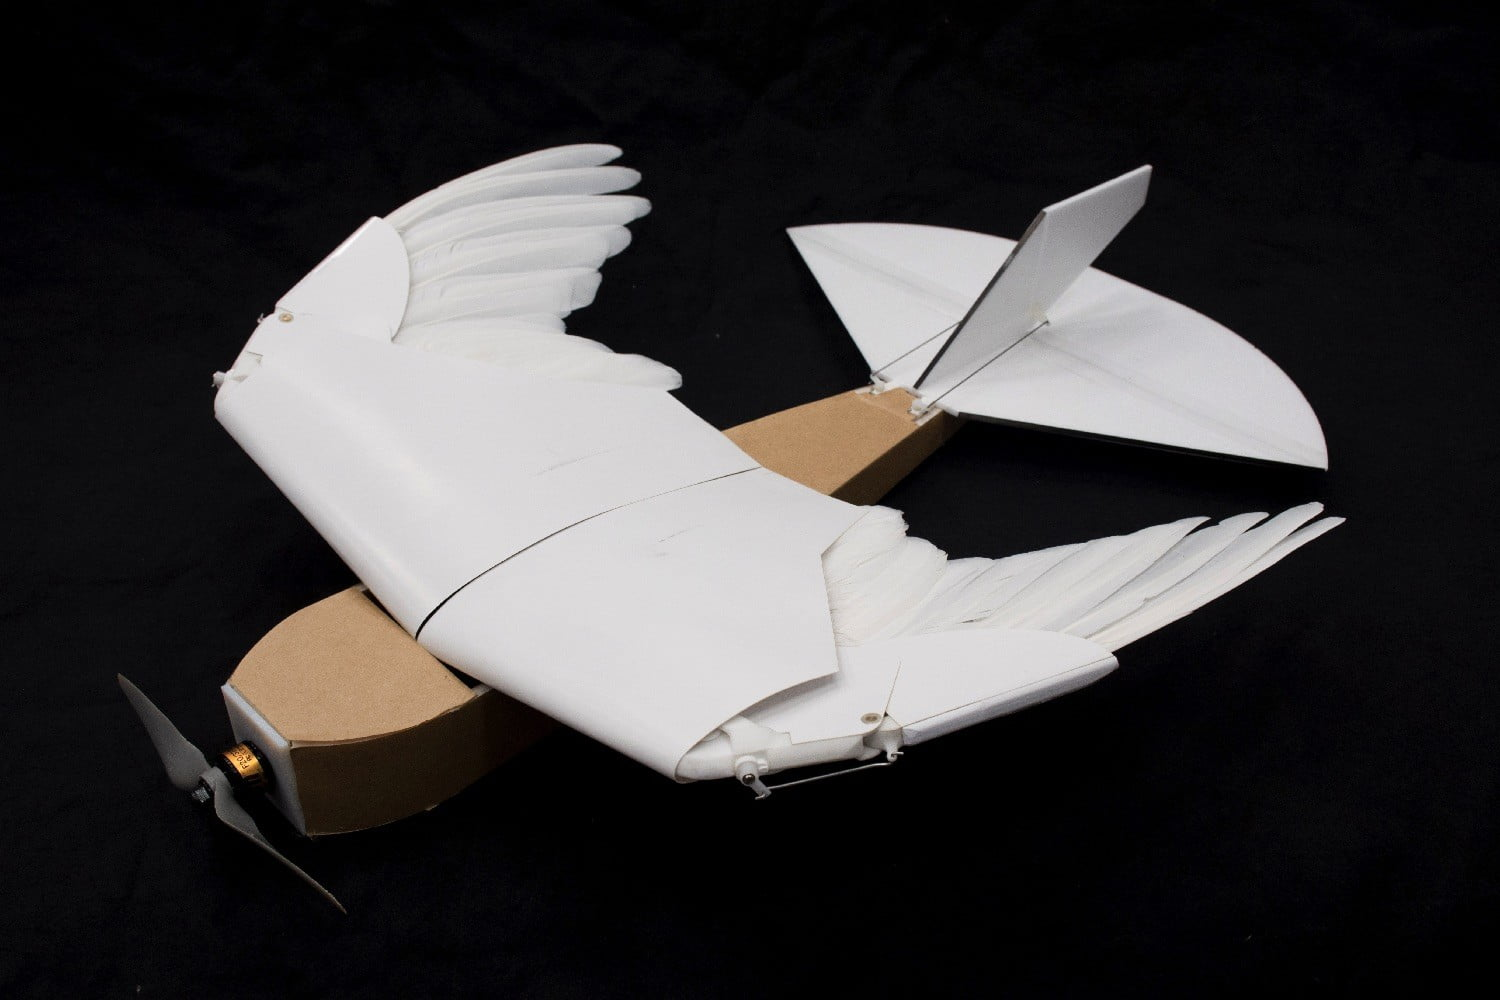 pigeon bot feather drone takes flight dl0 7394